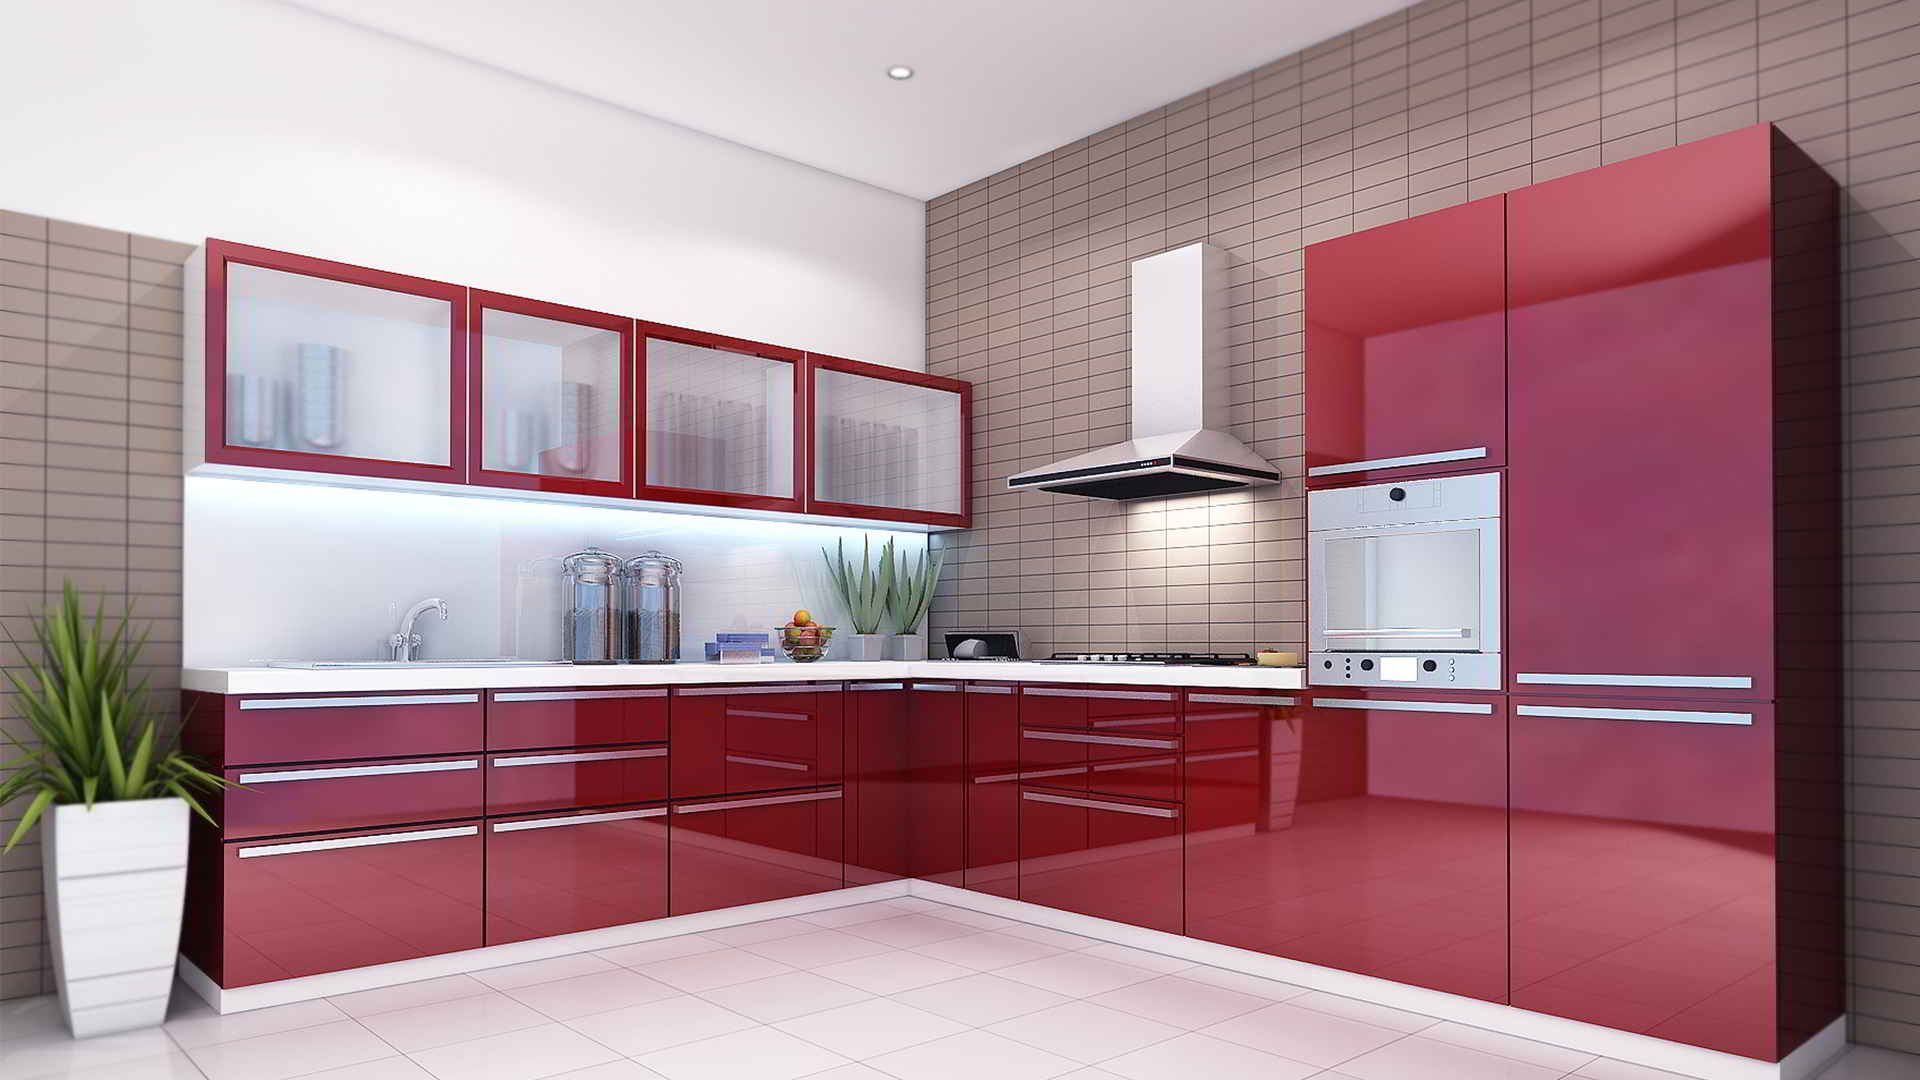 Fascinating 10 X 11 Kitchen Design Modular Kitchen Designs 10 X 11 Kitchen Design Modular Kitchen Indian Kitchen Modular L Shaped Modular Kitchen